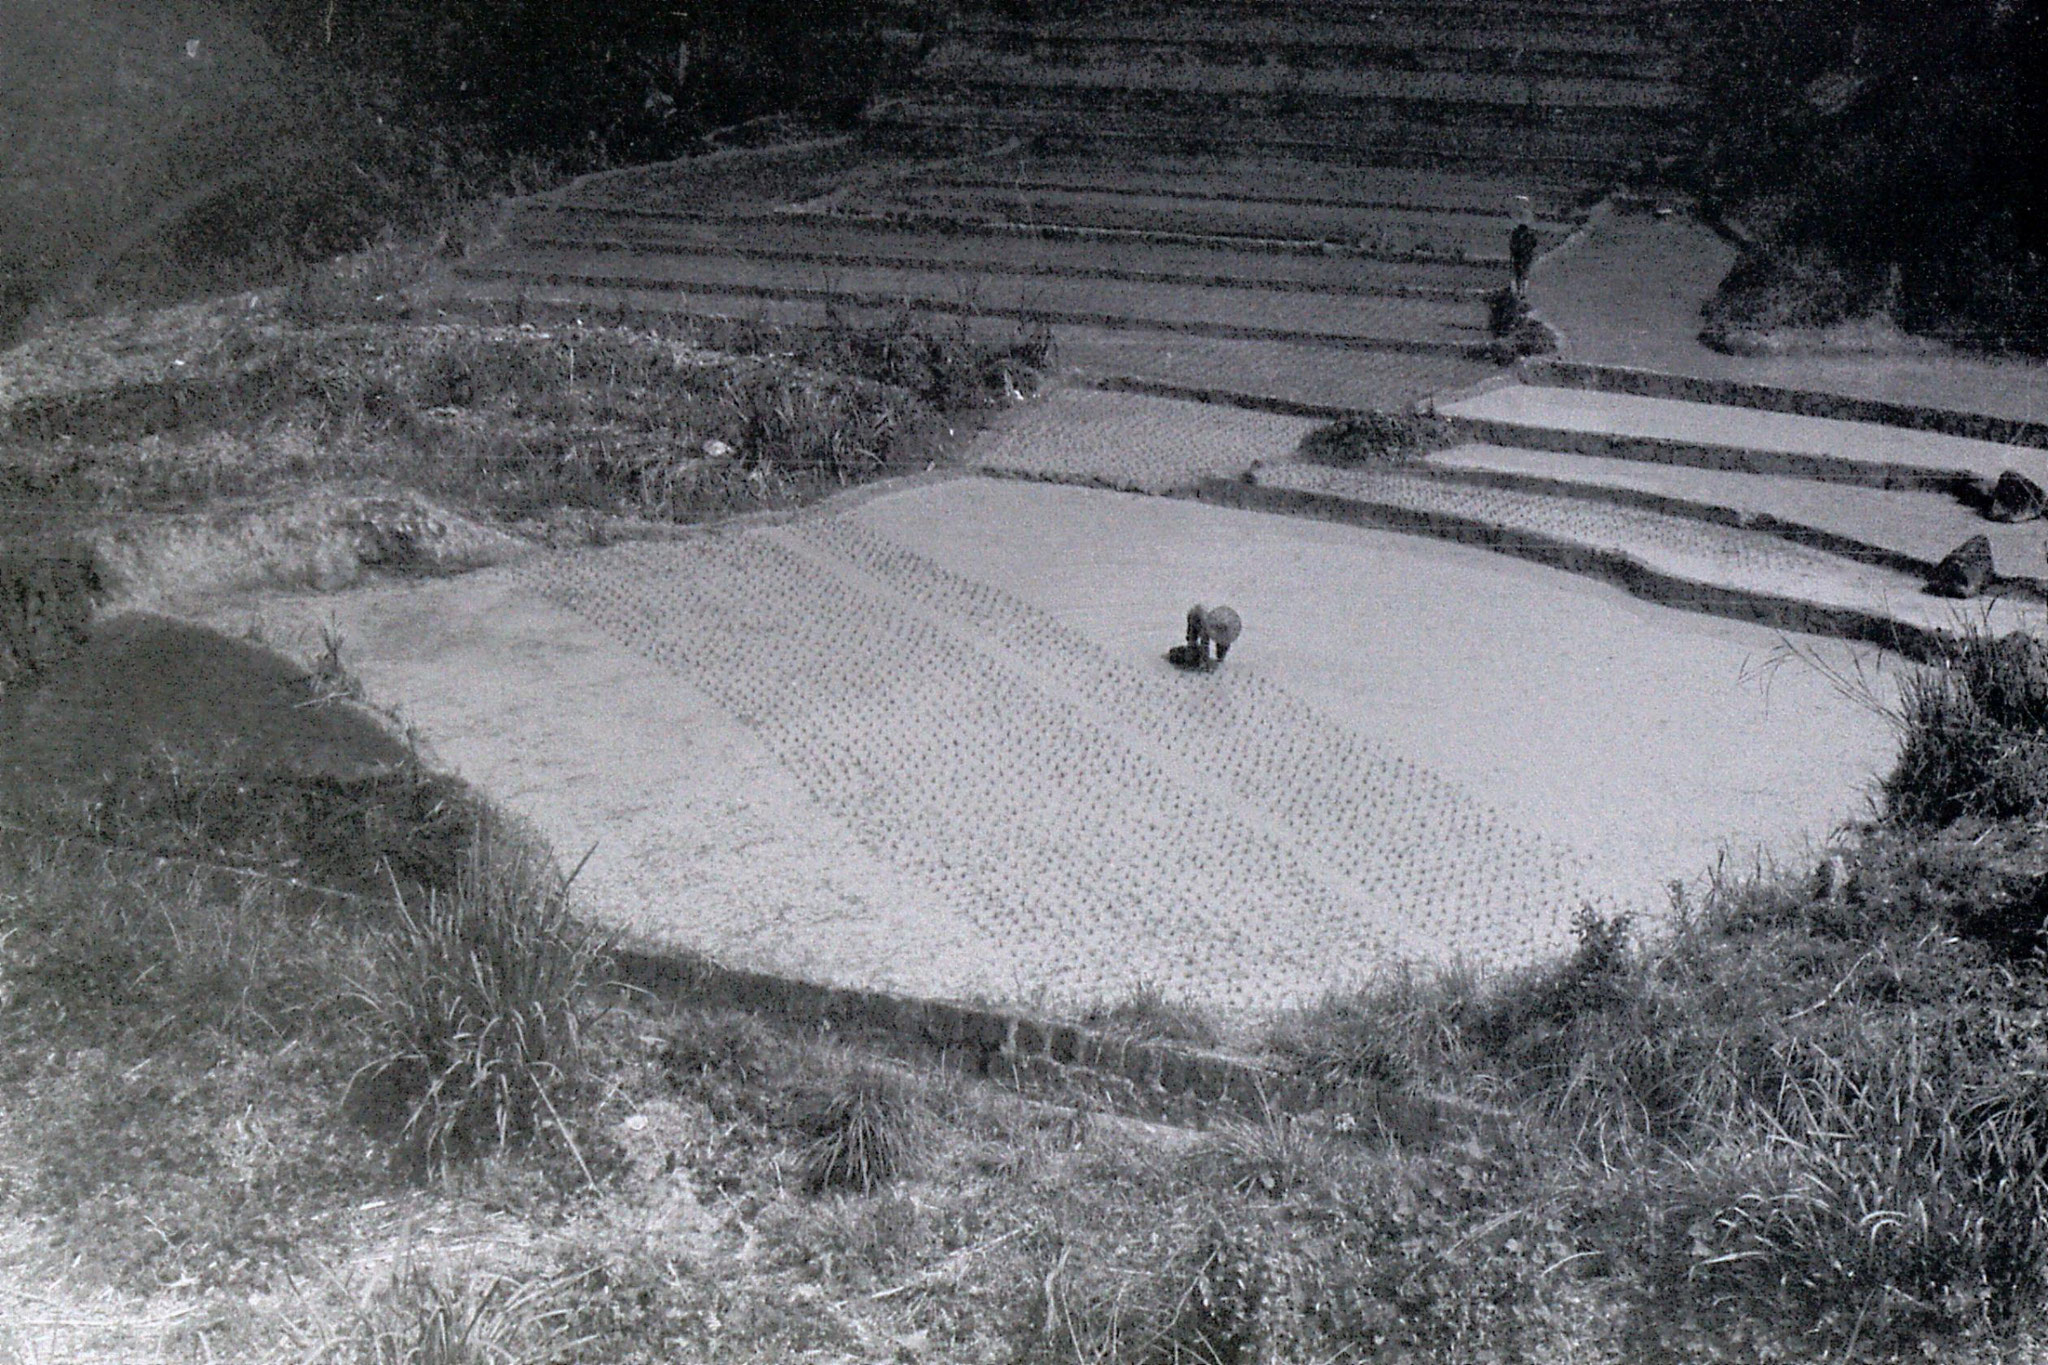 29/3/1989: 31: on train to Xiamen 10.30 planting rice